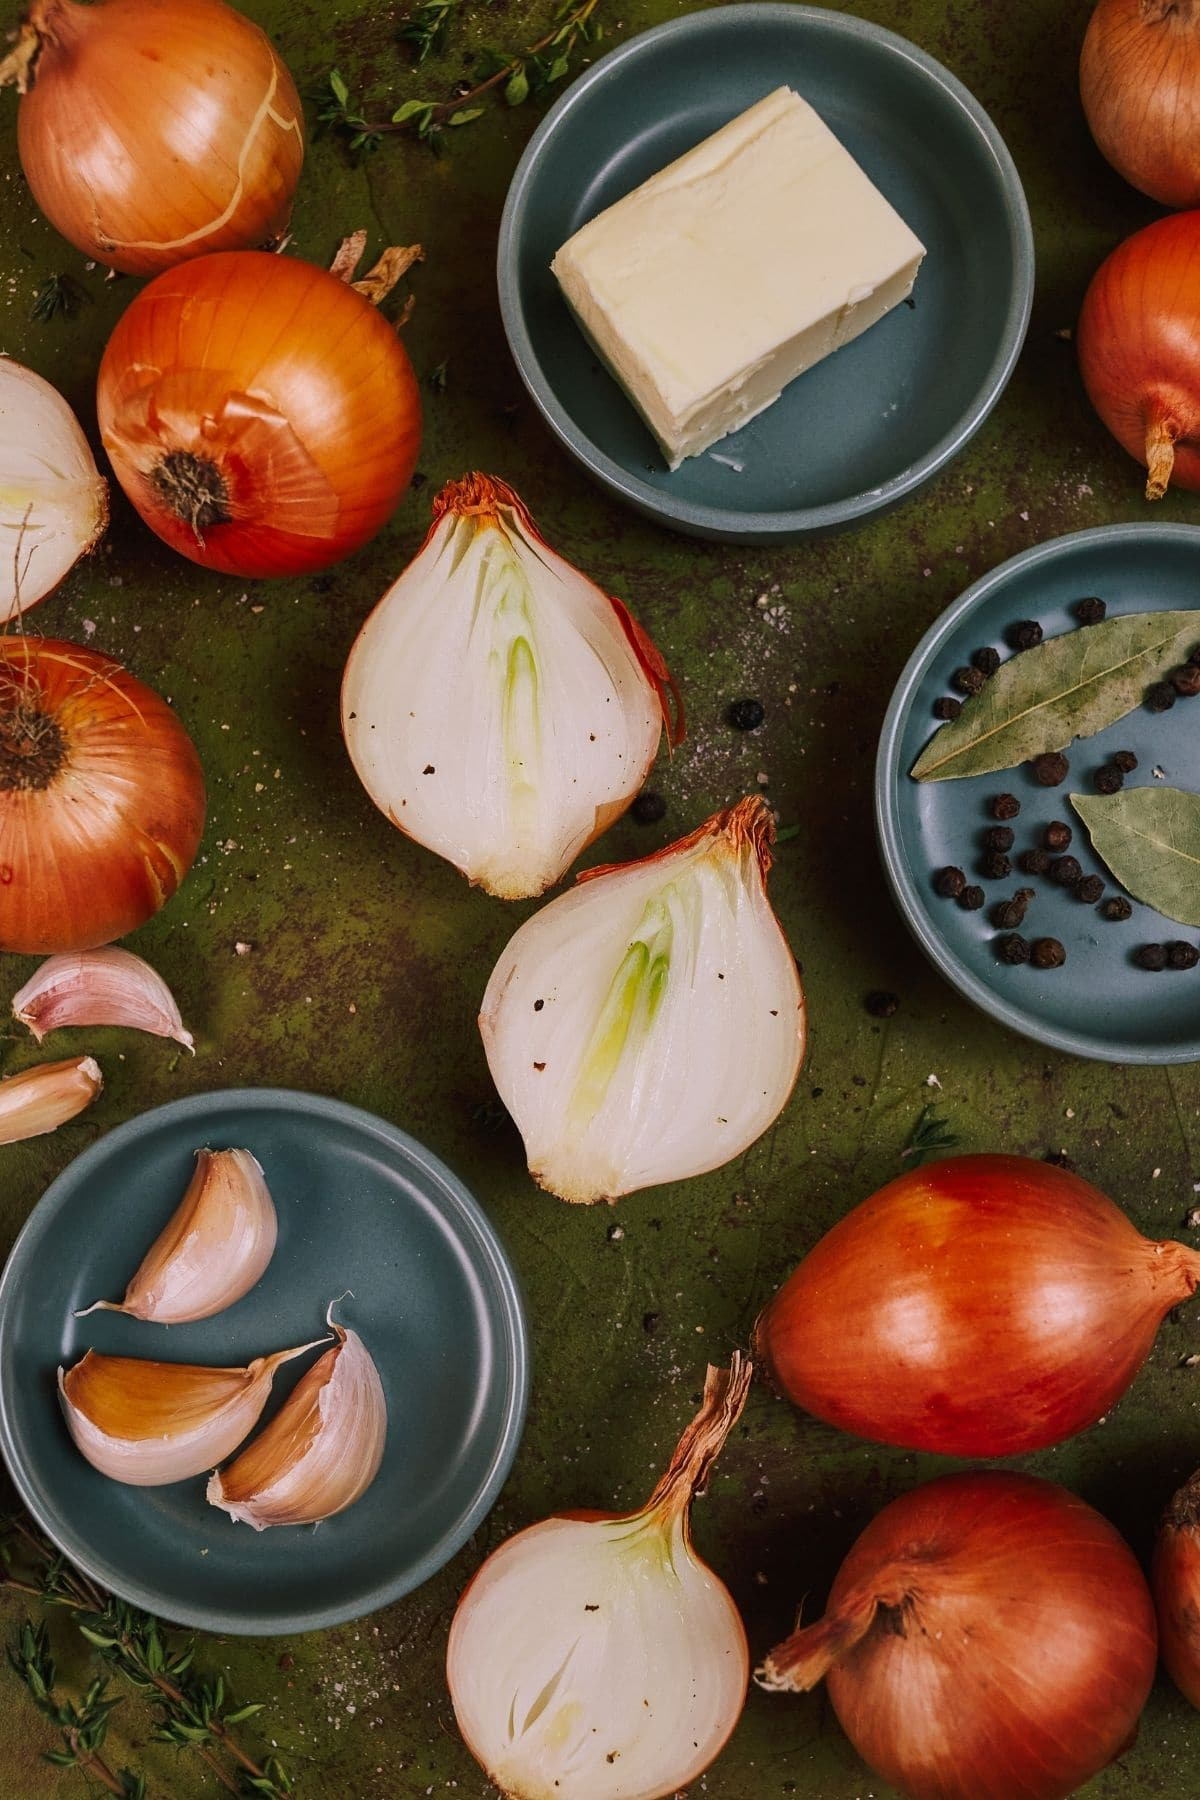 Onions on green table with teal bowls of spices and butter